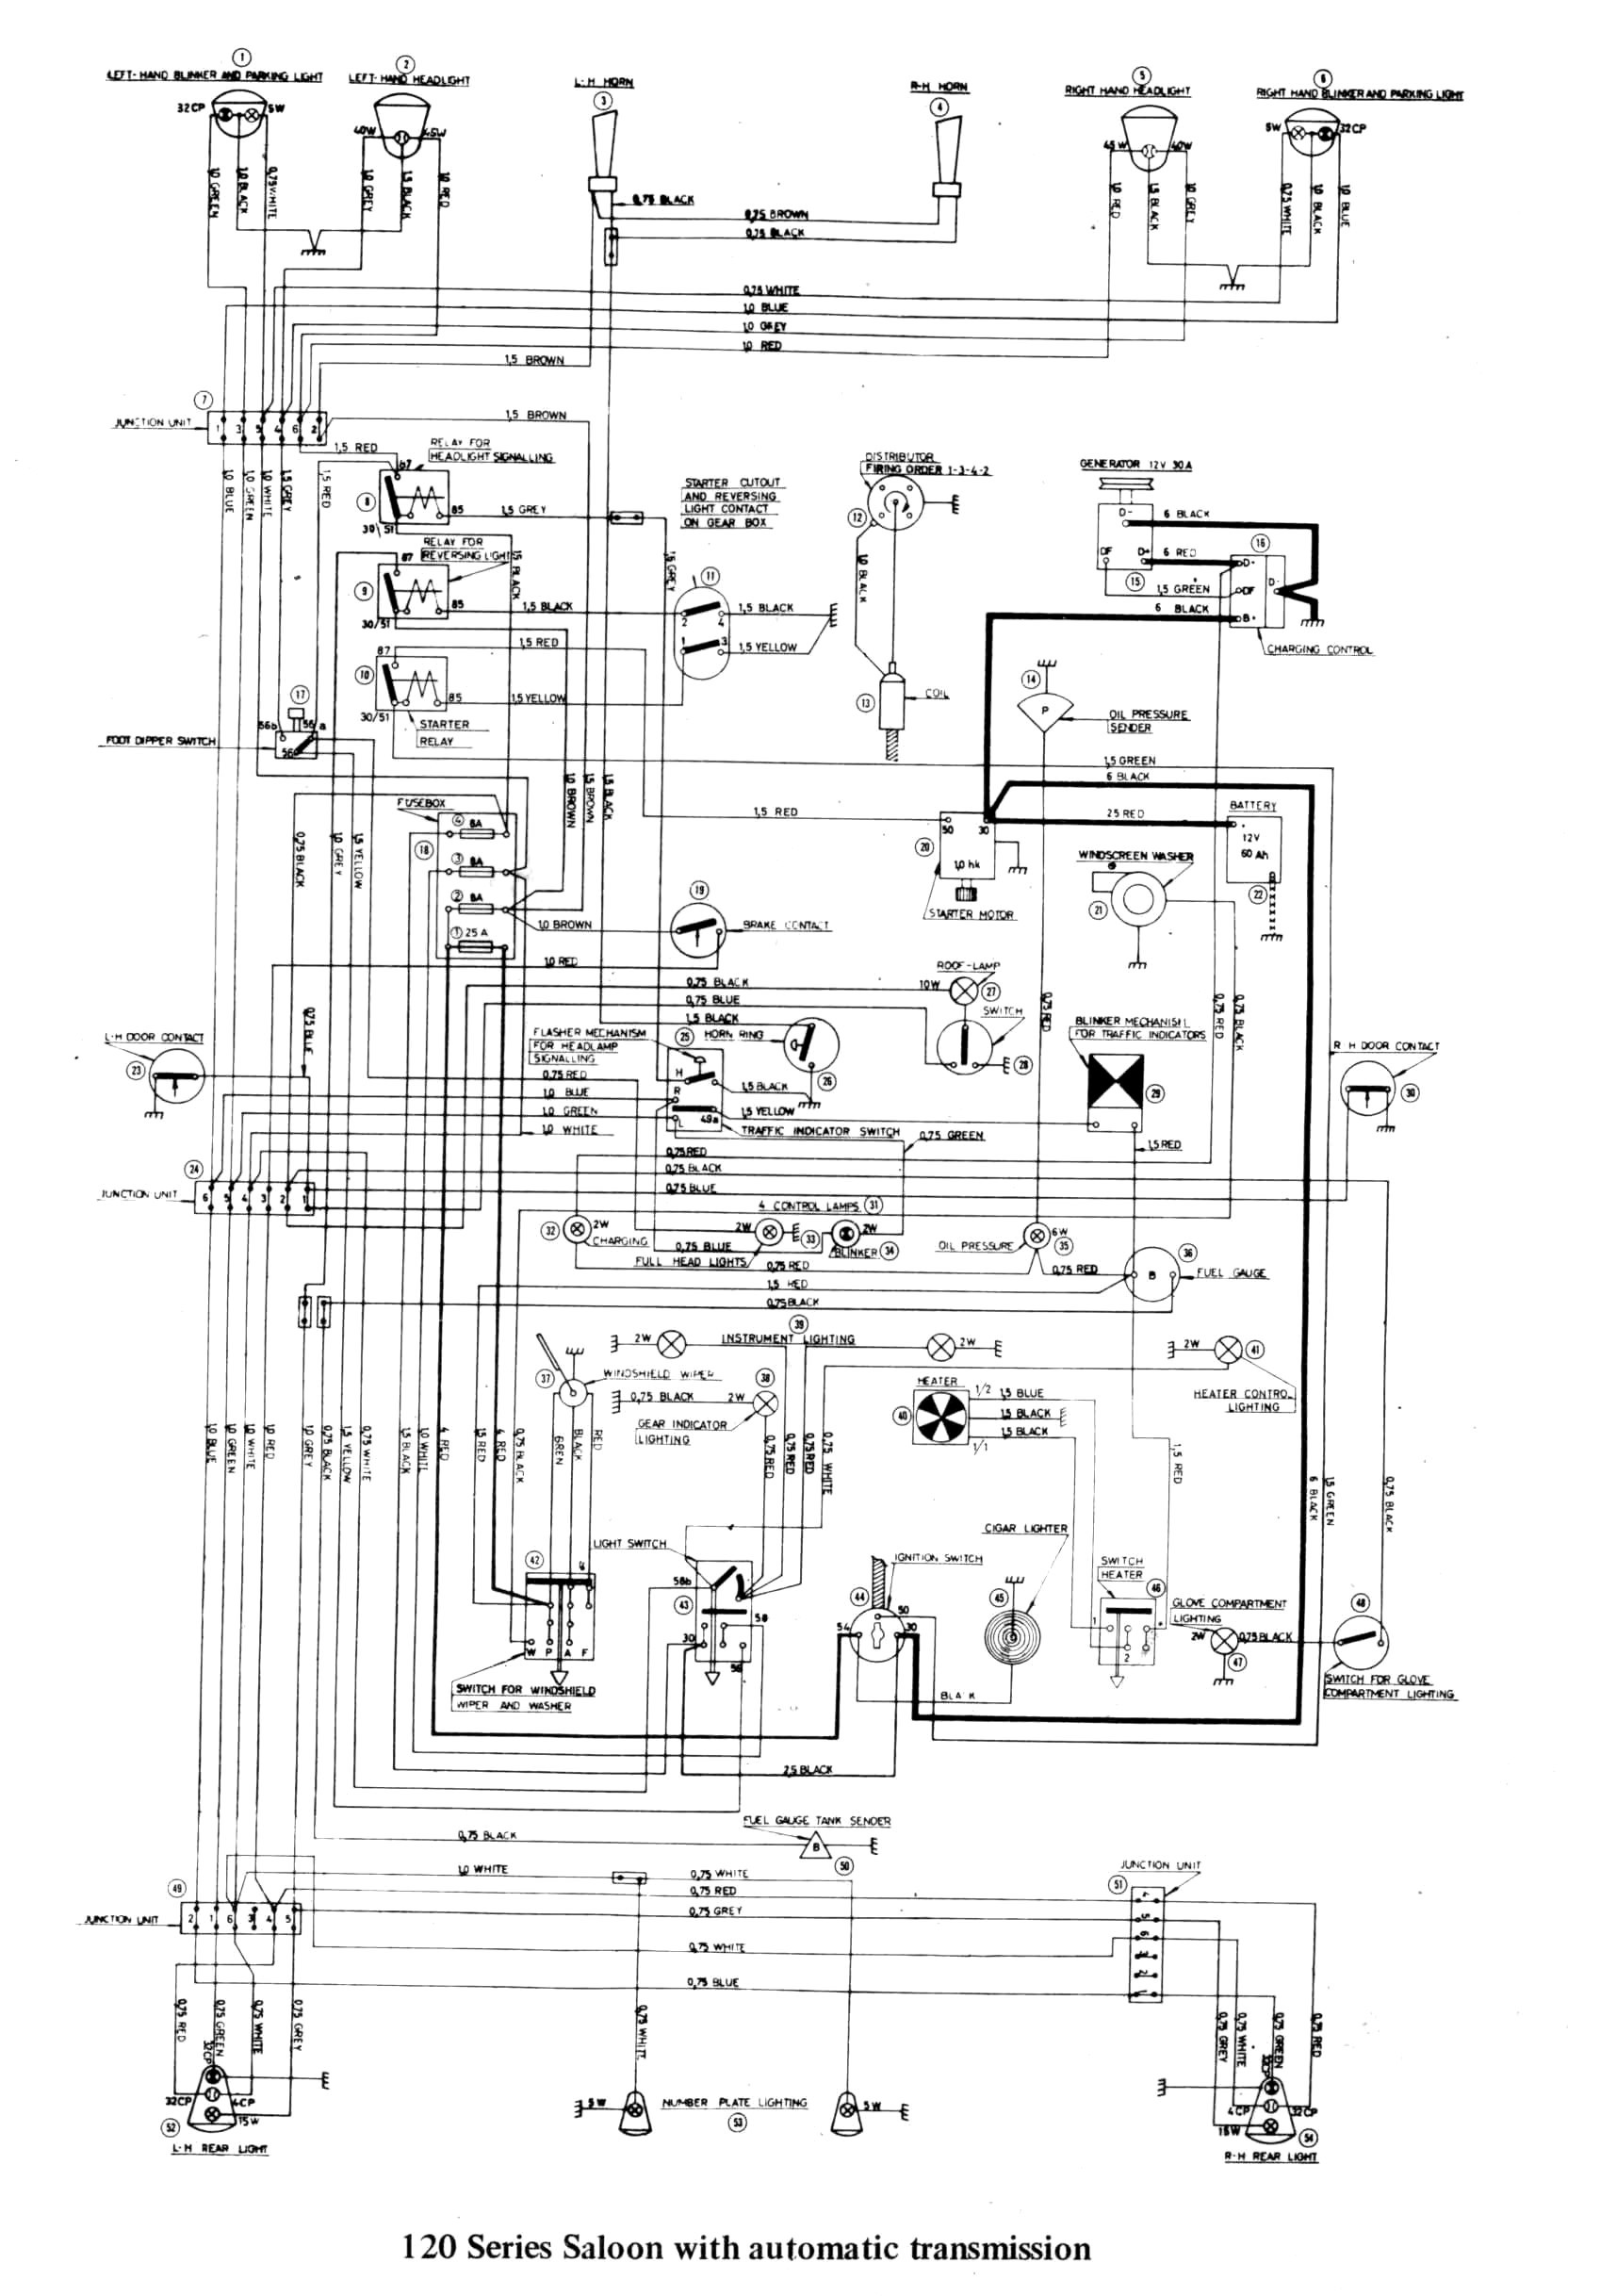 Truck Wiring Diagrams Free ford Truck Wiring Diagrams Free sources Of Truck Wiring Diagrams Free